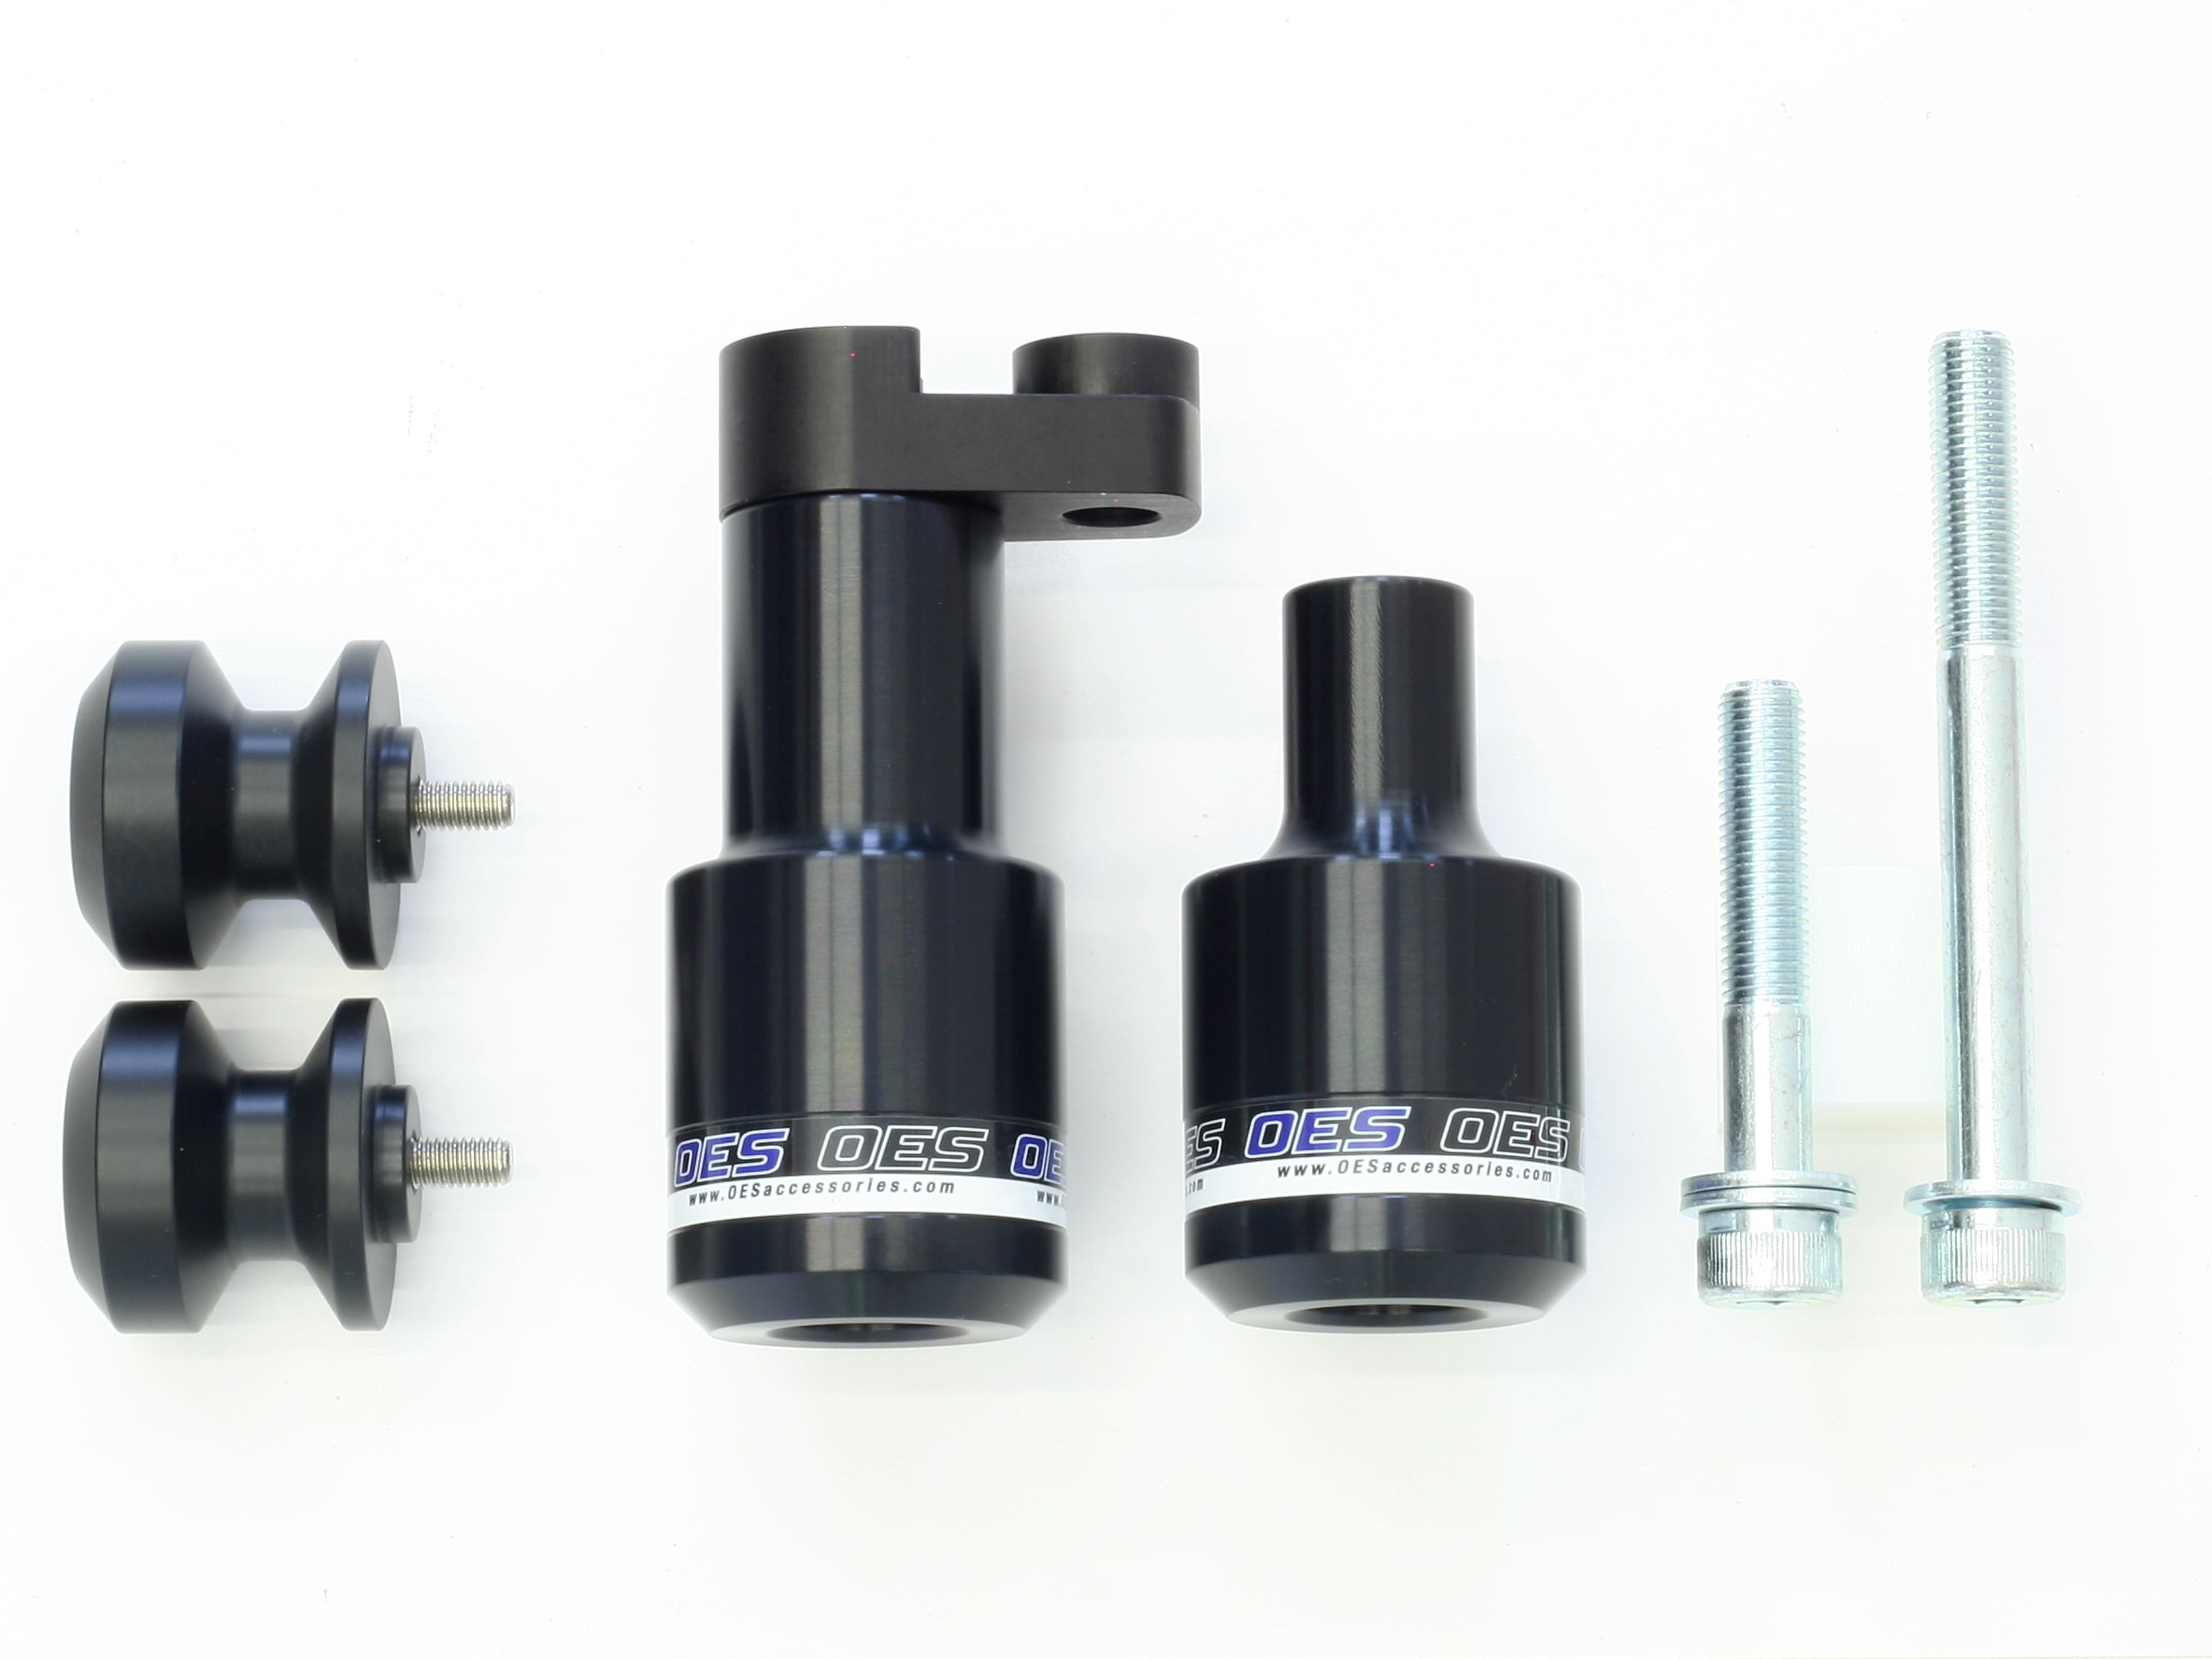 Yamaha YZF R6 Frame Sliders and Swingarm Spools 2006-2007